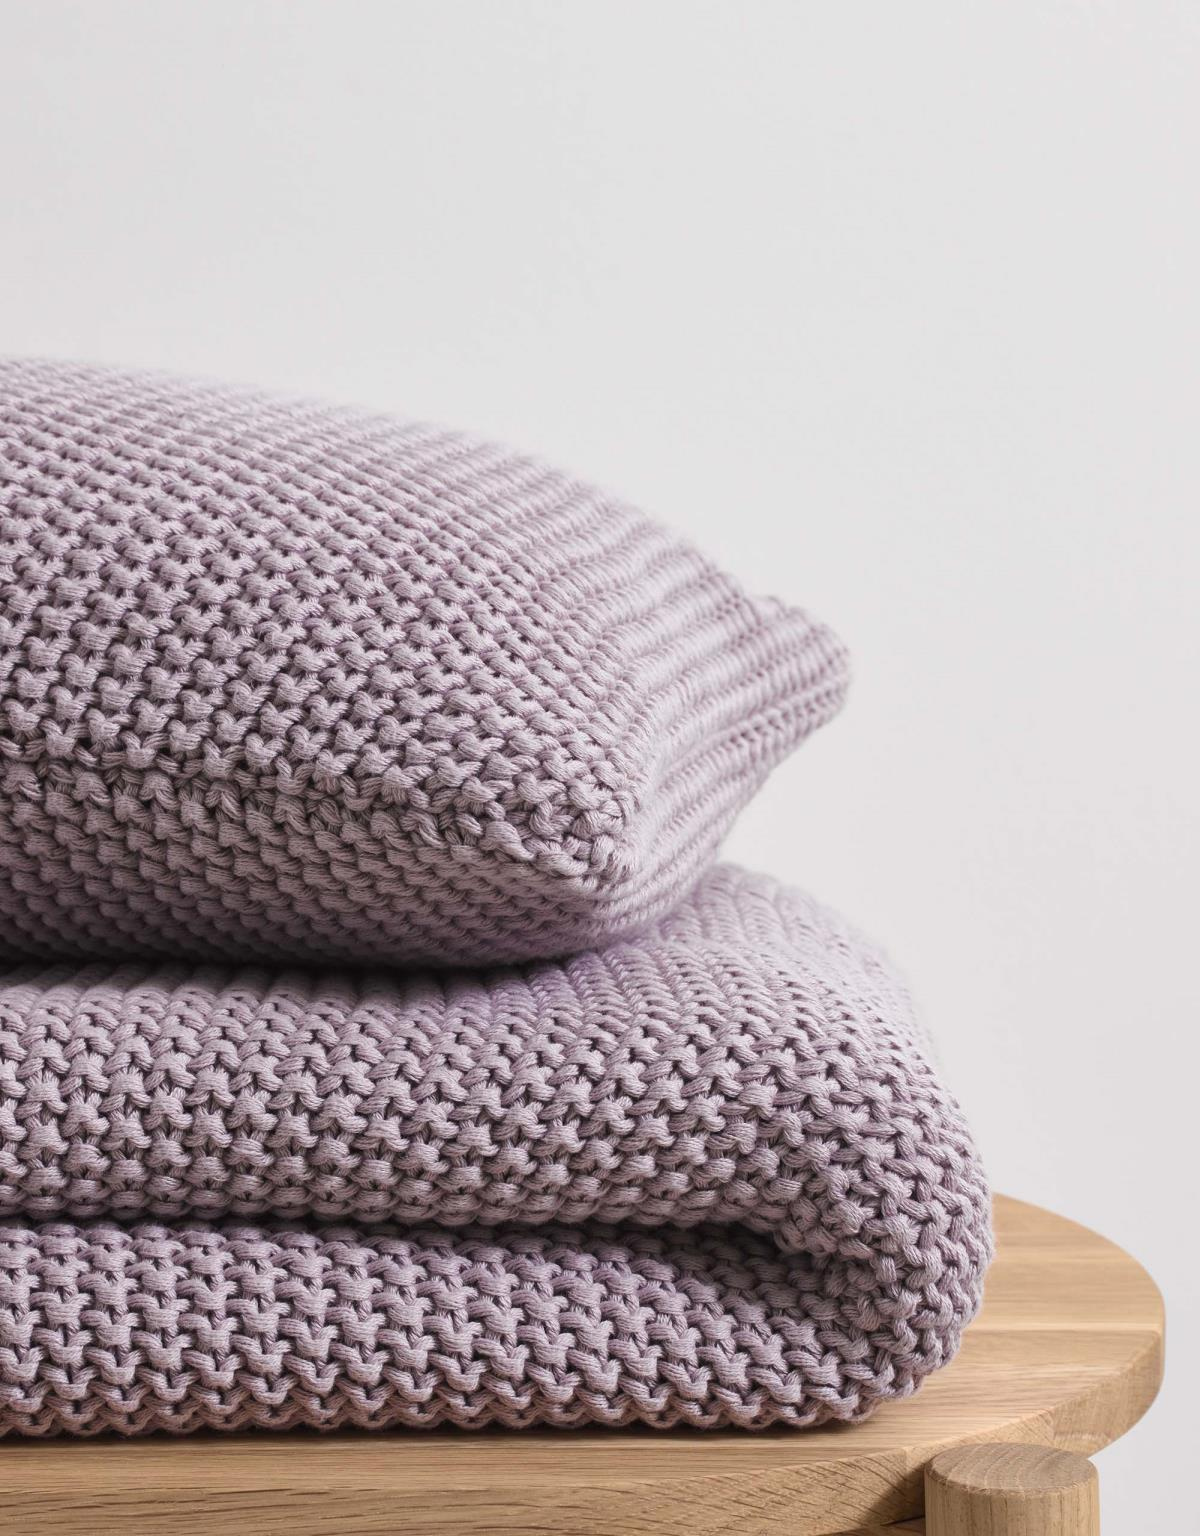 Marc O'Polo Nordic Knit Accessoires in Lavendelpaars